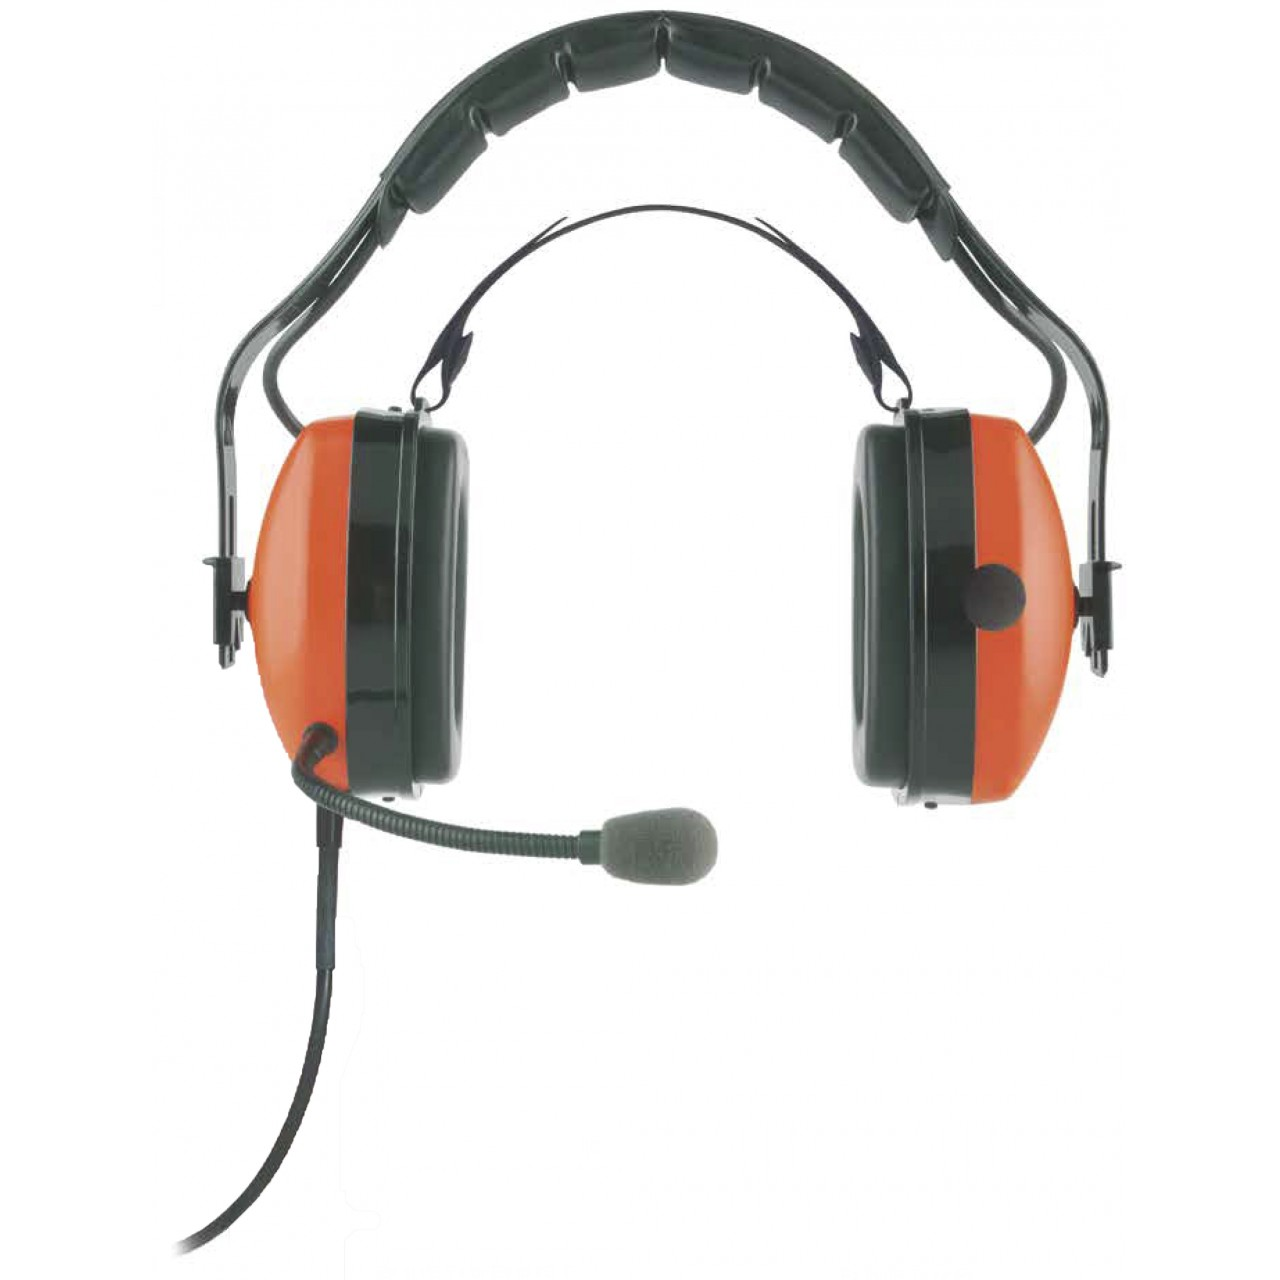 HS-CEIP Headsets and earphones - ICOM